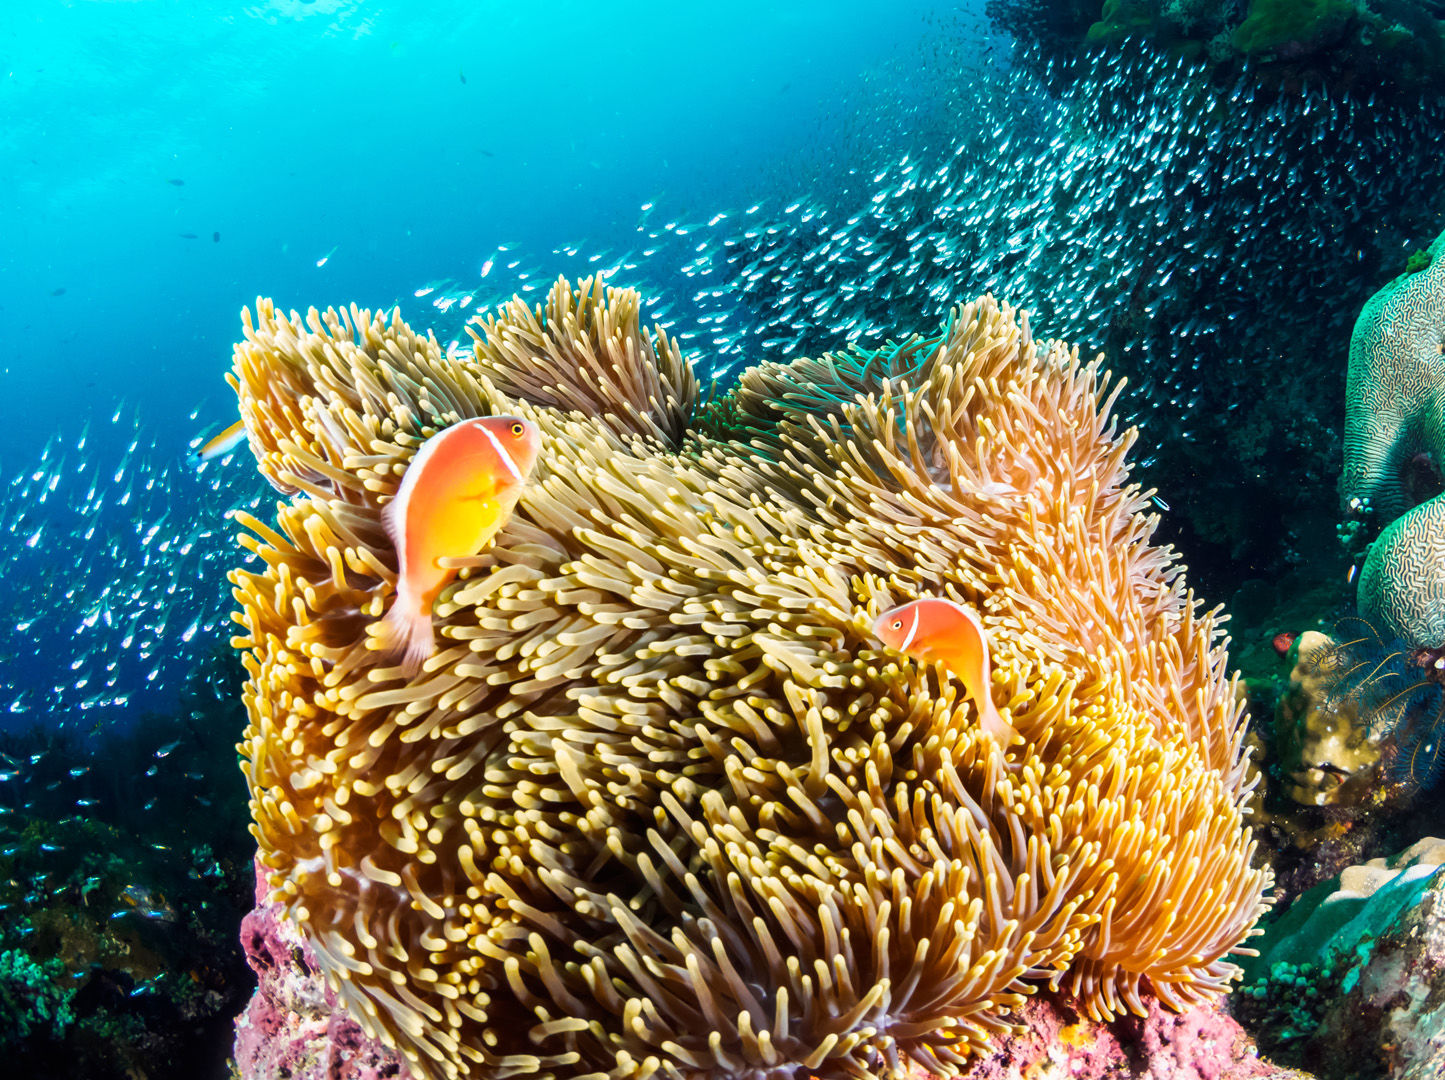 As destinations go PNG can please big animal enthusiasts, reef lovers and critter hunters alike through some of the most prolific and pristine coral growth in the world.